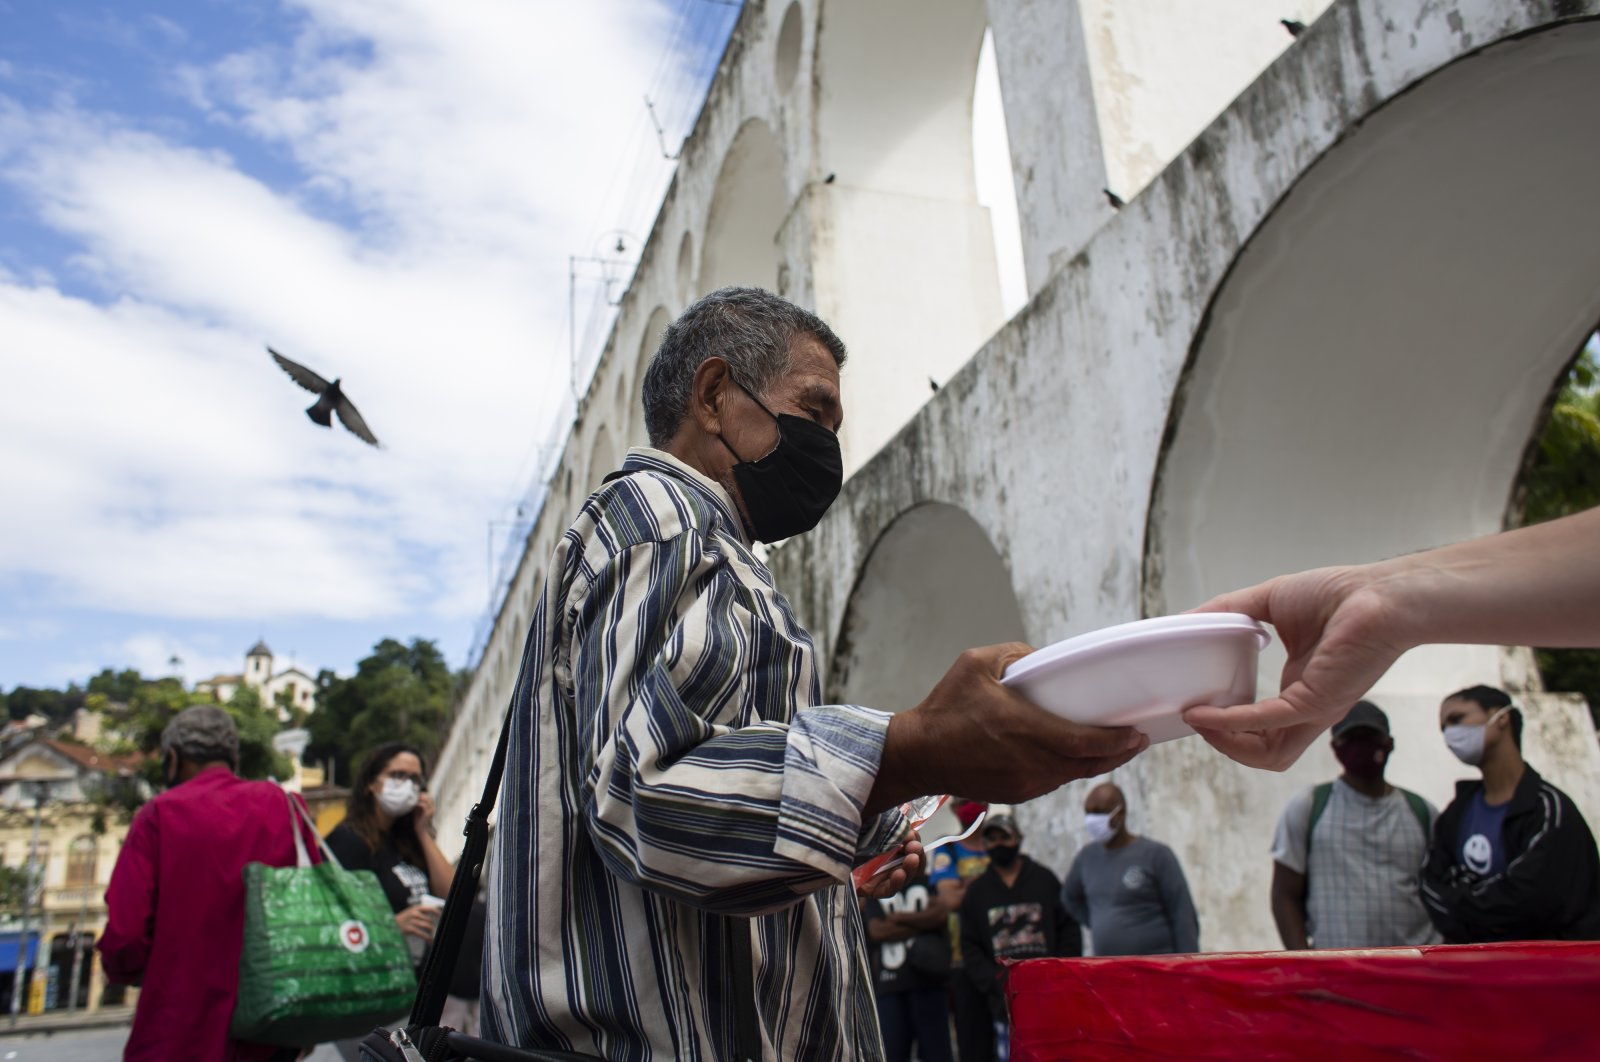 People line up for free meals delivered by Covid Without Hunger group of volunteers, in Rio de Janeiro, Brazil, Apr. 29, 2021. (AP PHOTO)